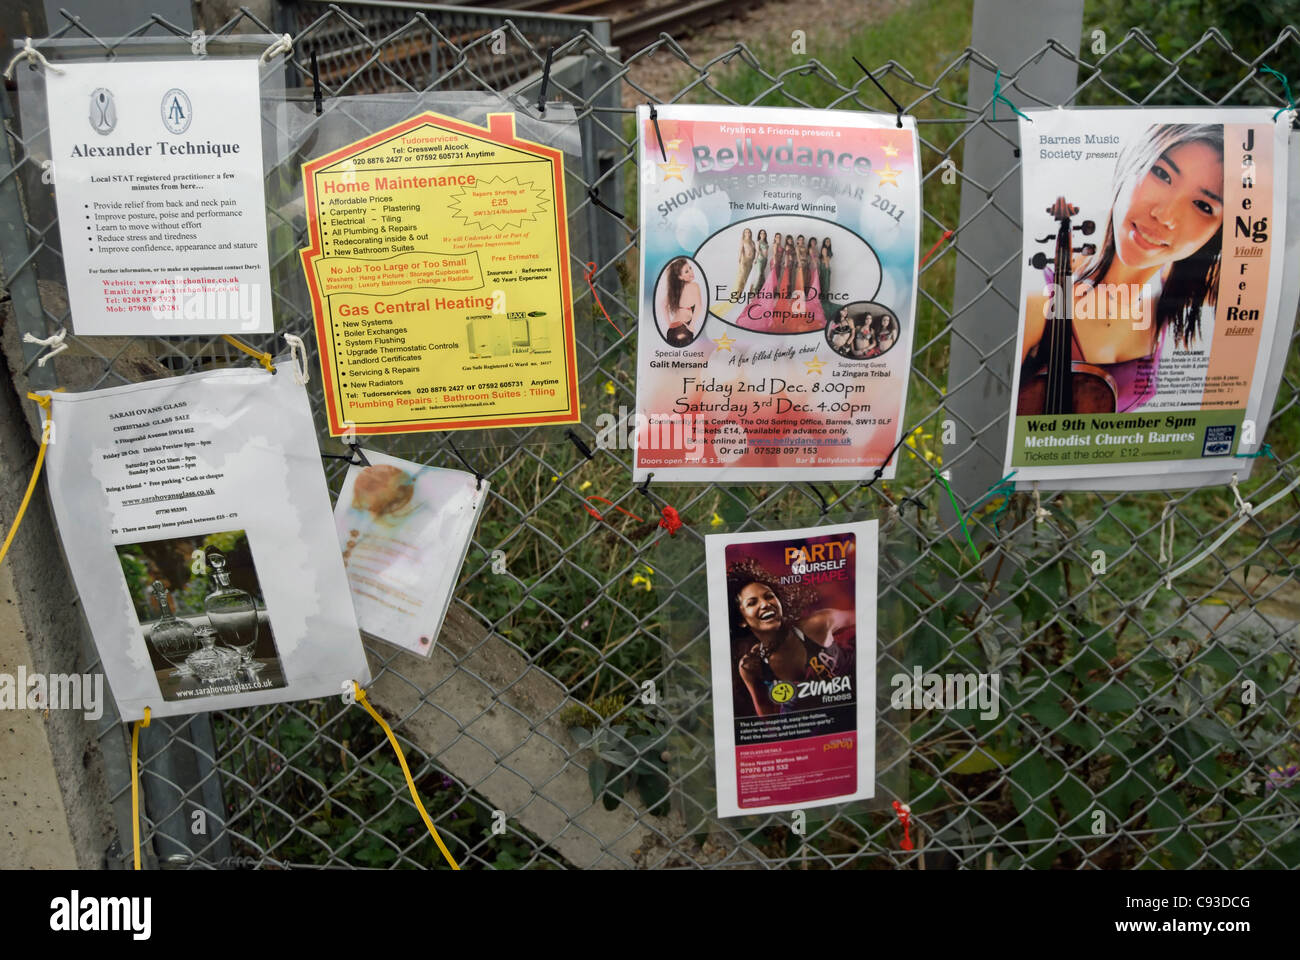 adverts for forthcoming events and courses fixed to a fence adjacent to a railway track in mortlake, southwest london, - Stock Image